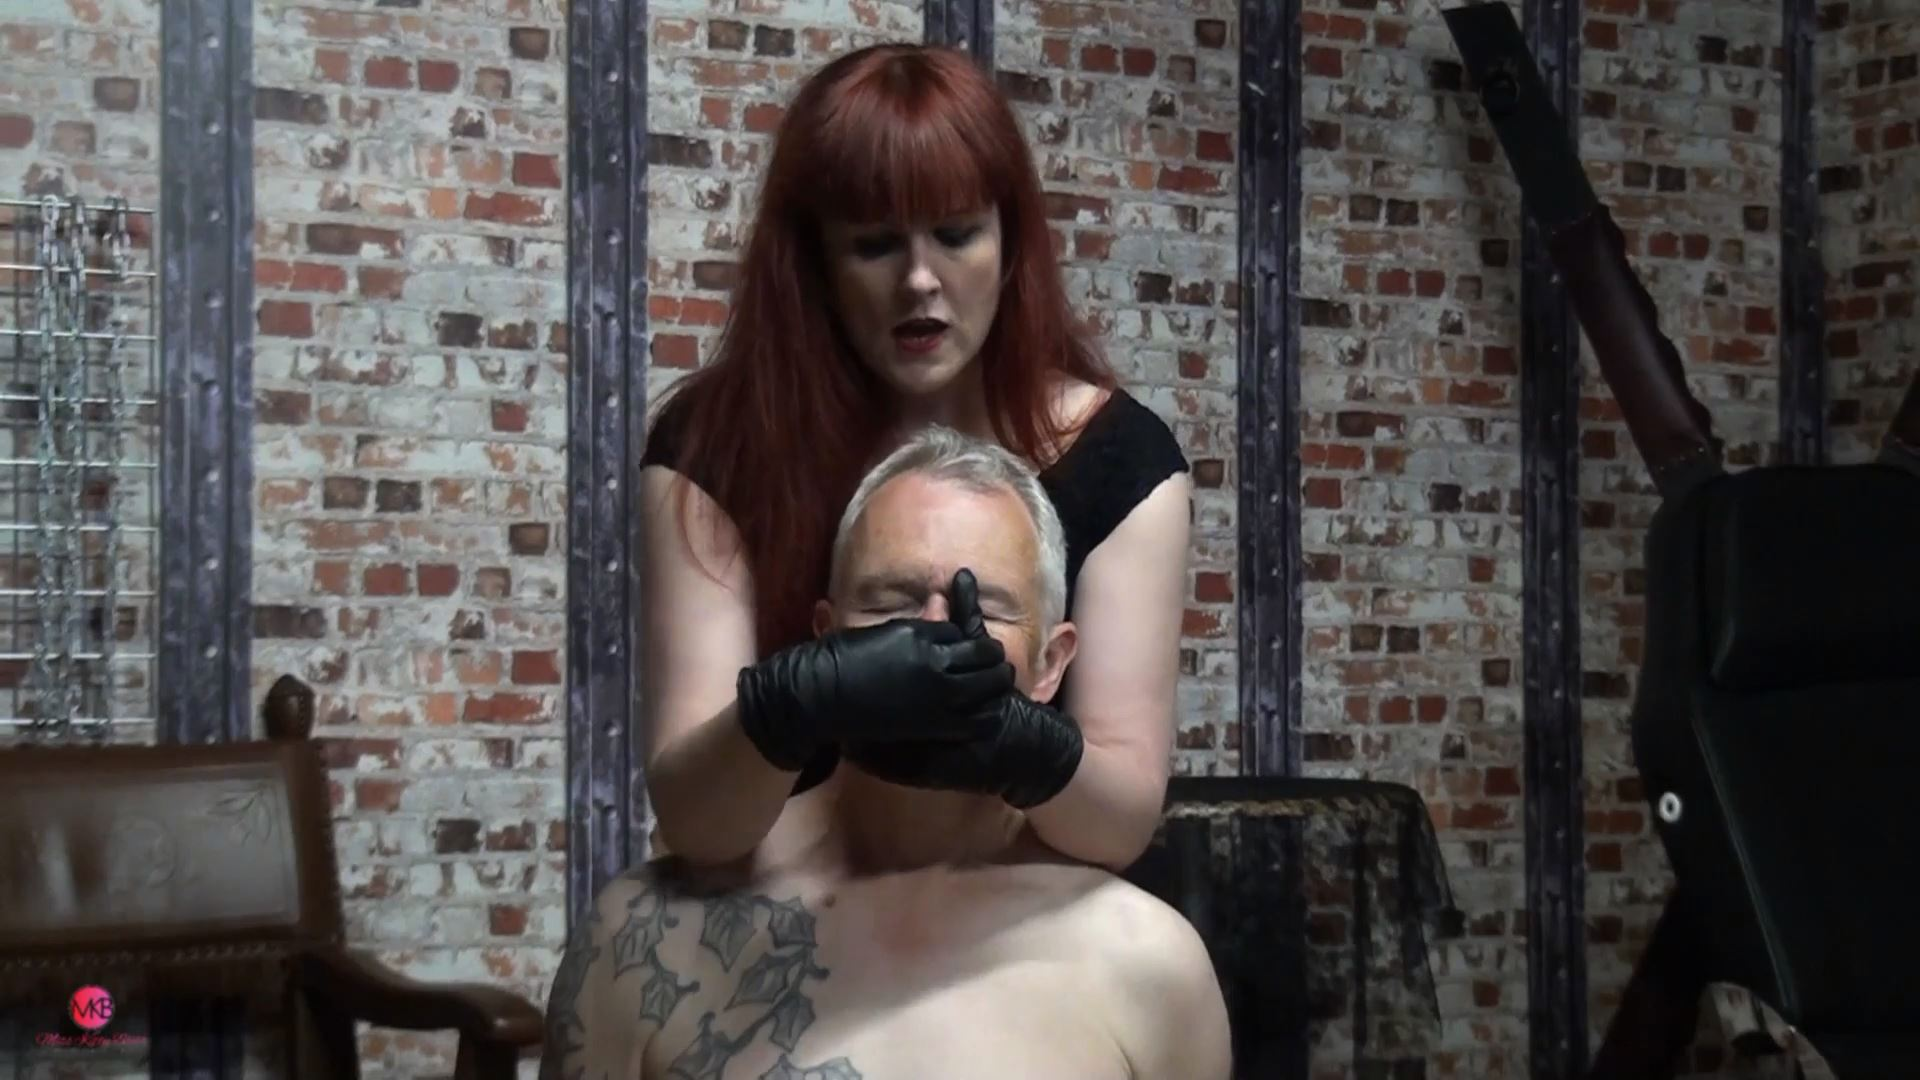 Black Leather Glove Smother - MISS KITTY BLISS - FULL HD/1080p/MP4